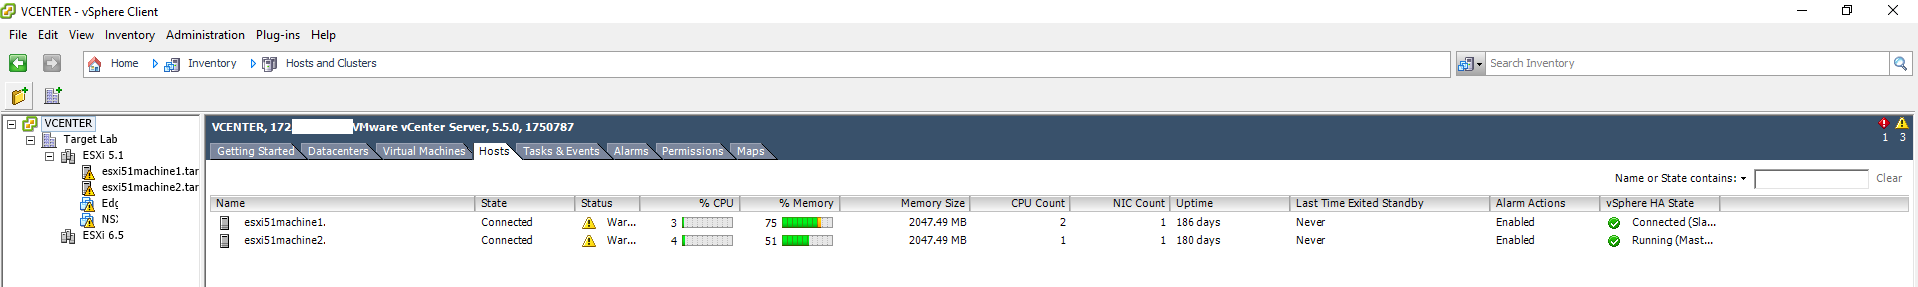 Vulnerability Scanning of the VMWare Environment from Tenable sc